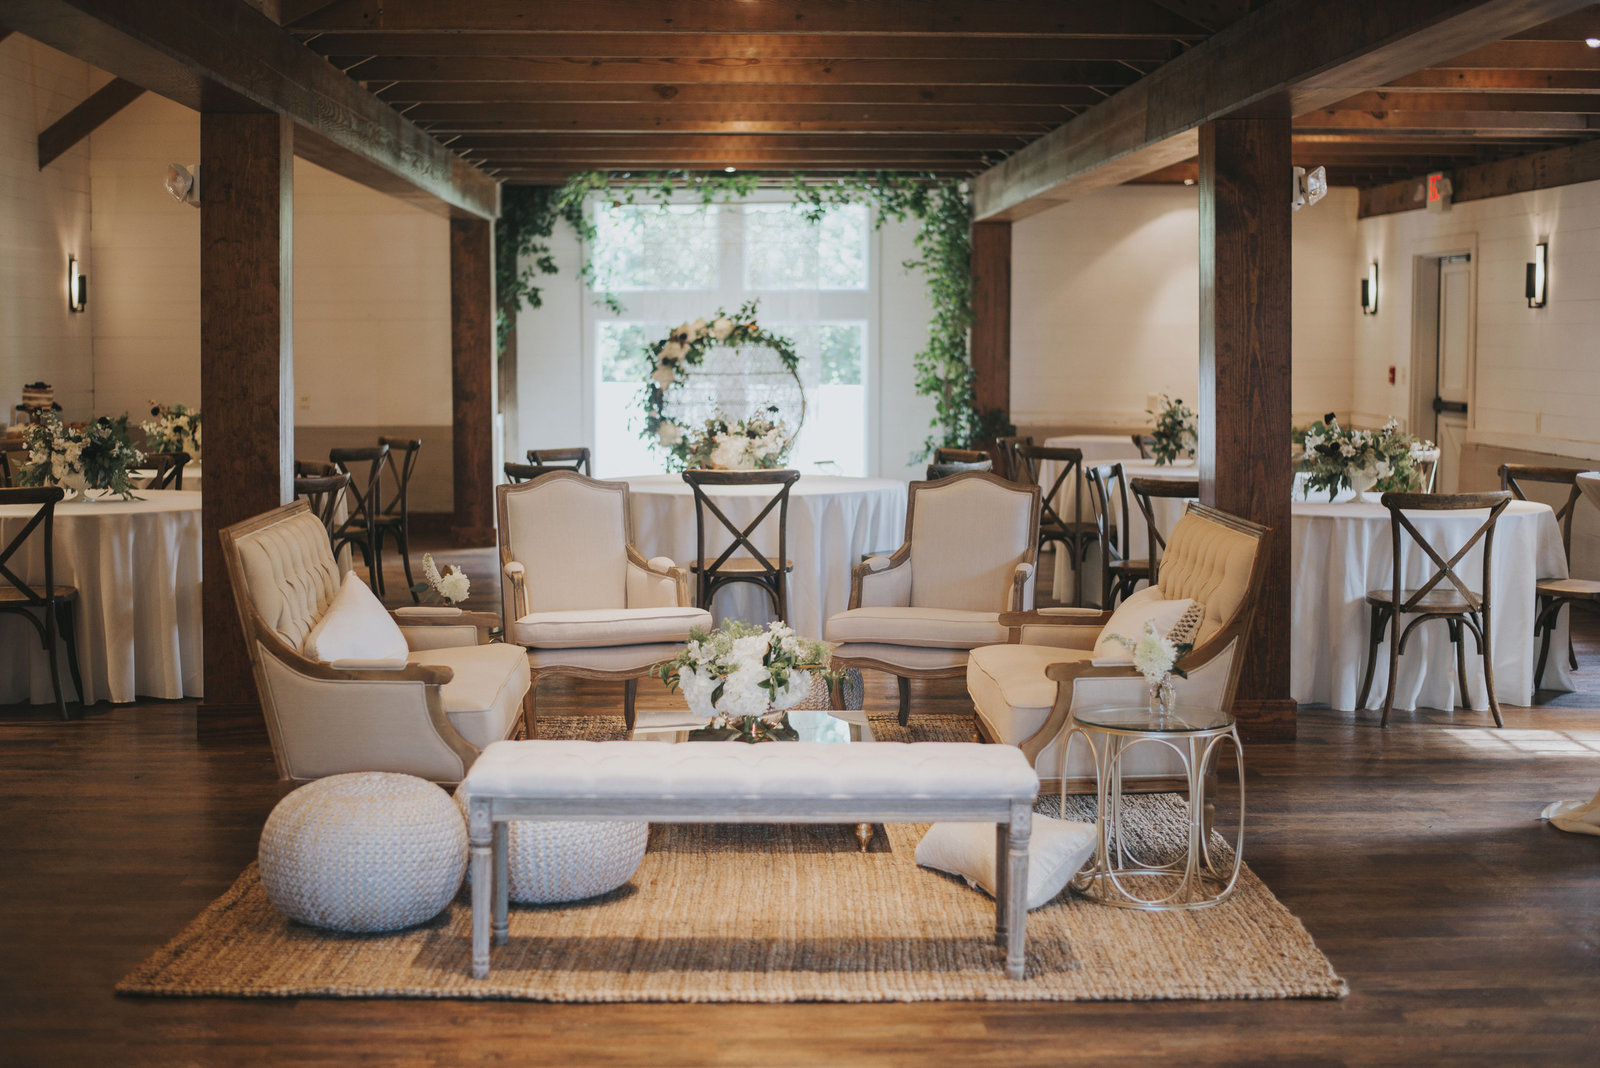 Beautiful event space with exposed wood beams